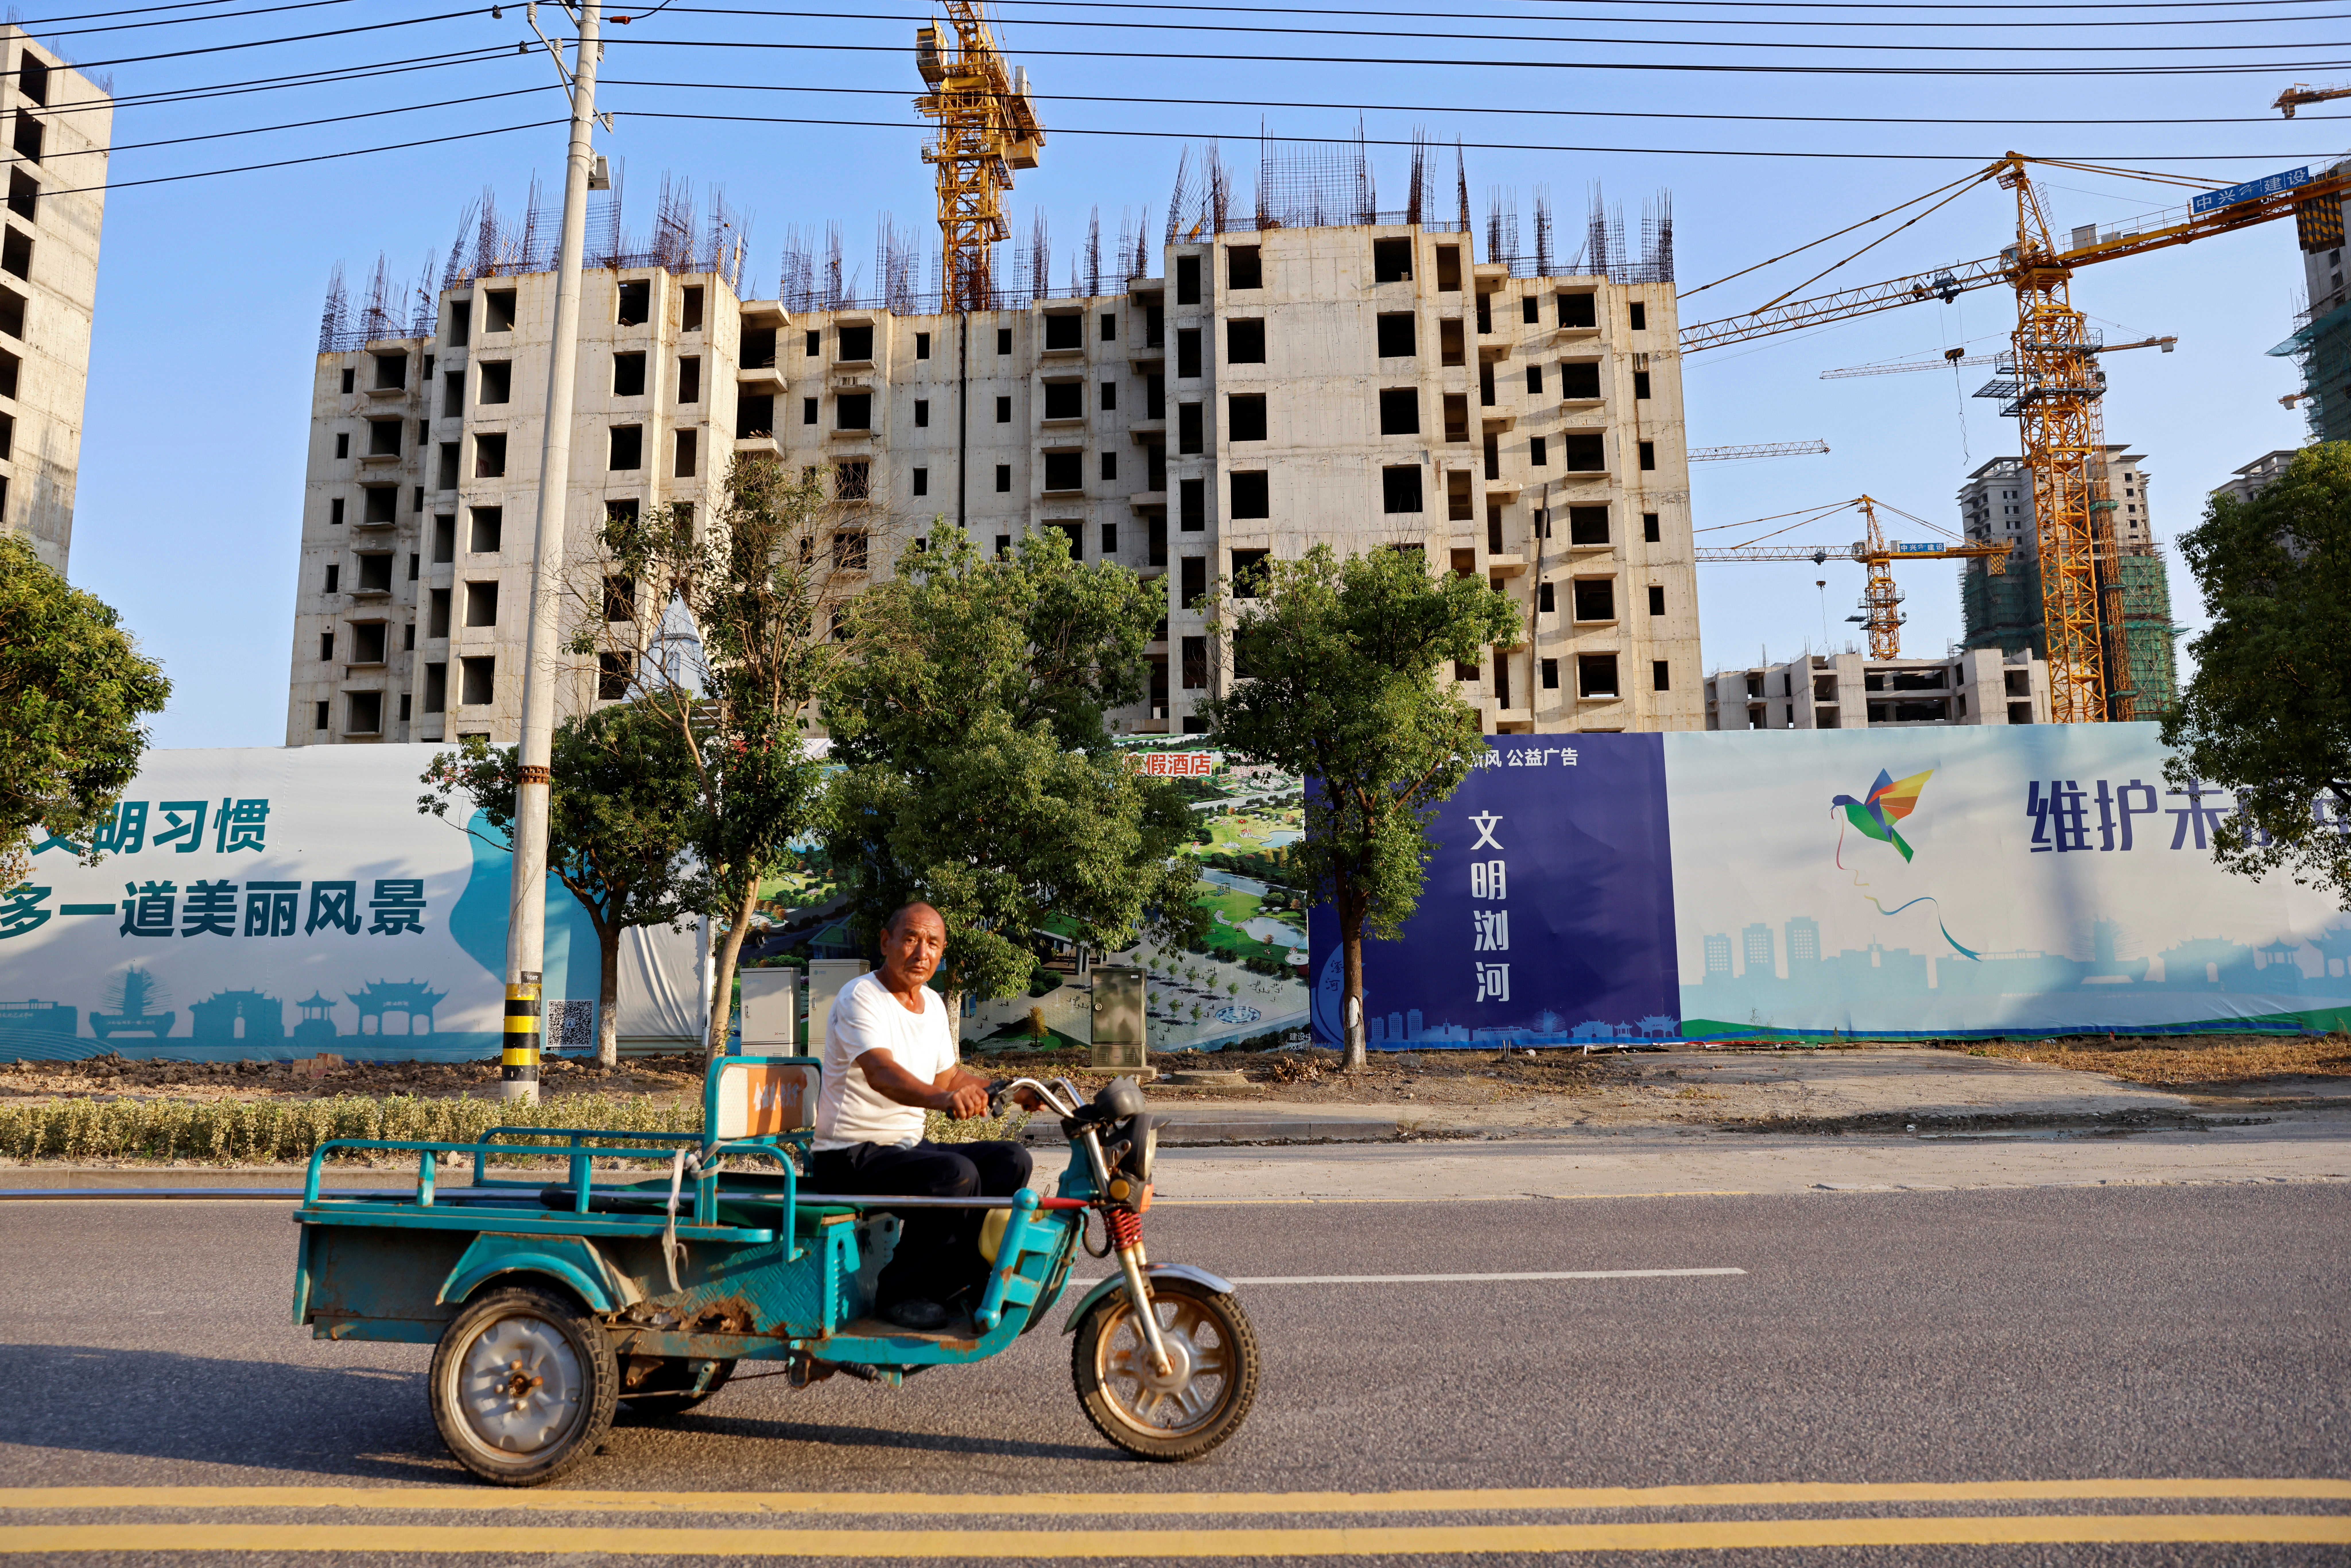 A man rides a vehicle past the construction site of Evergrande Cultural Tourism City, a project developed by China Evergrande Group, in Suzhou's Taicang, Jiangsu province, China September 23, 2021. REUTERS/Aly Song/File Photo